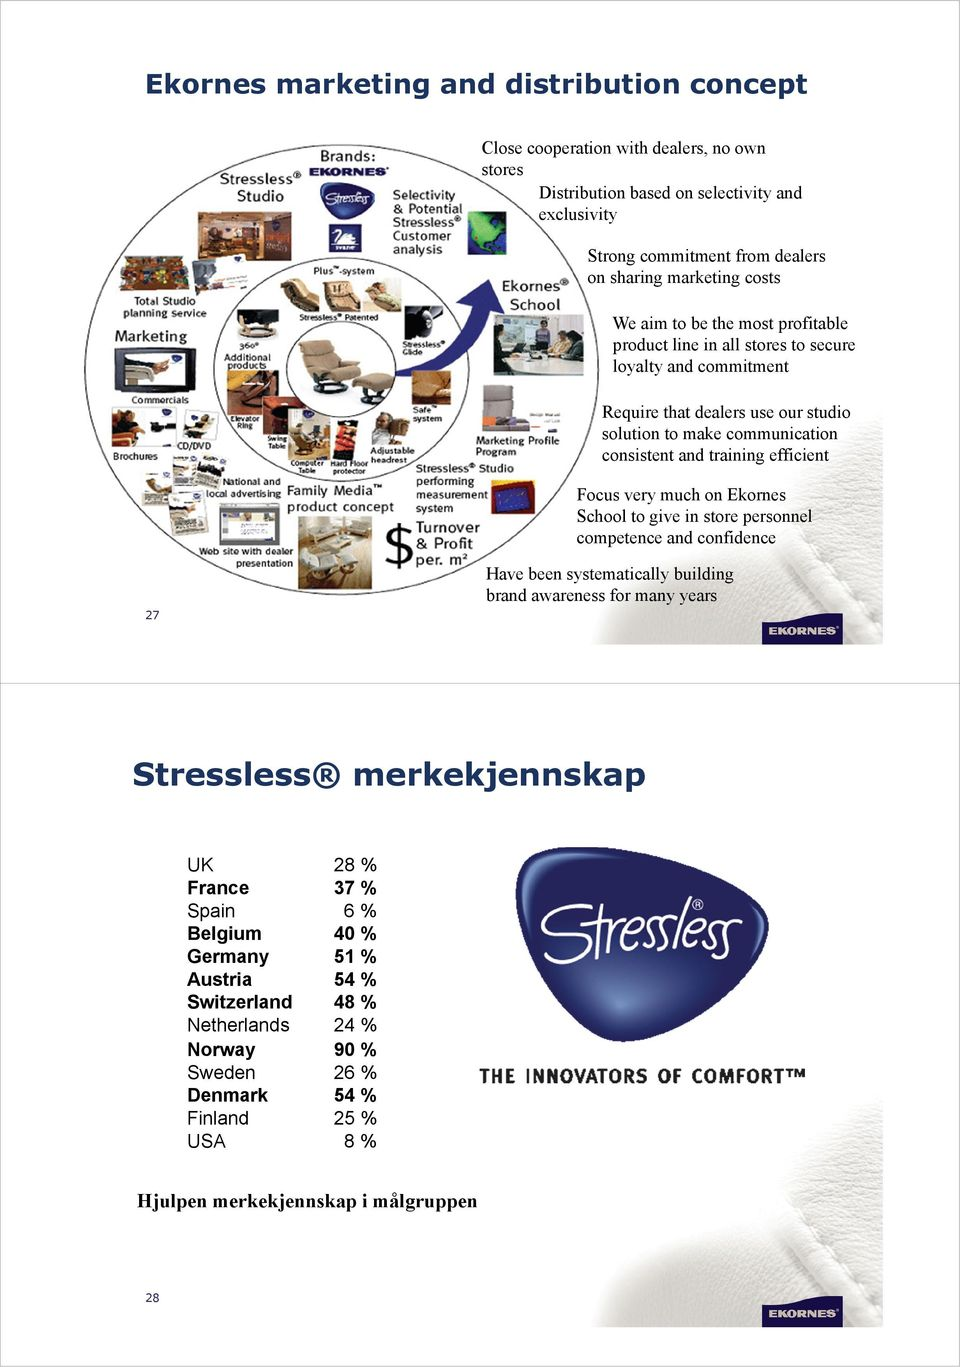 efficient Focus very much on Ekornes School to give in store personnel competence and confidence 27 Have been systematically building brand awareness for many years Stressless merkekjennskap UK